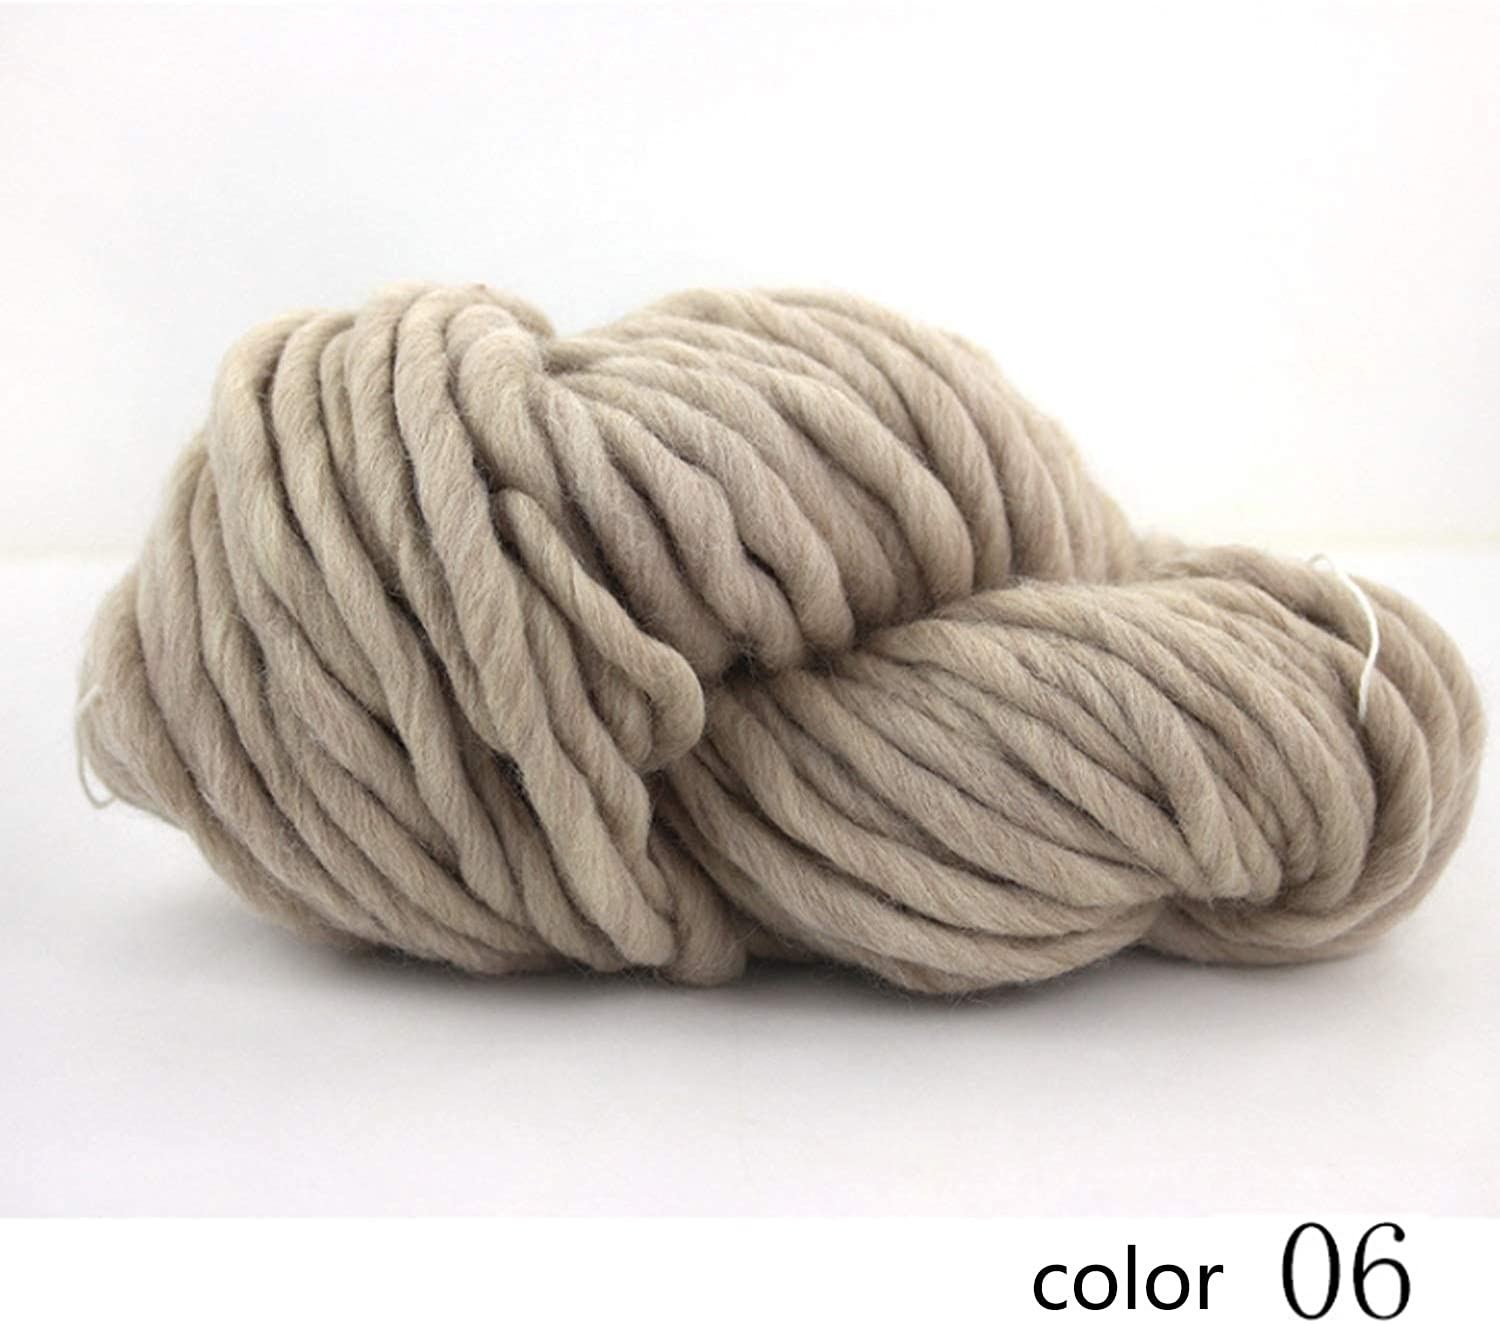 Yarn knitting yarn soft woven wool yarn hat line scarf line 1 box about 220 g 1 0.2 NM 8 colors available